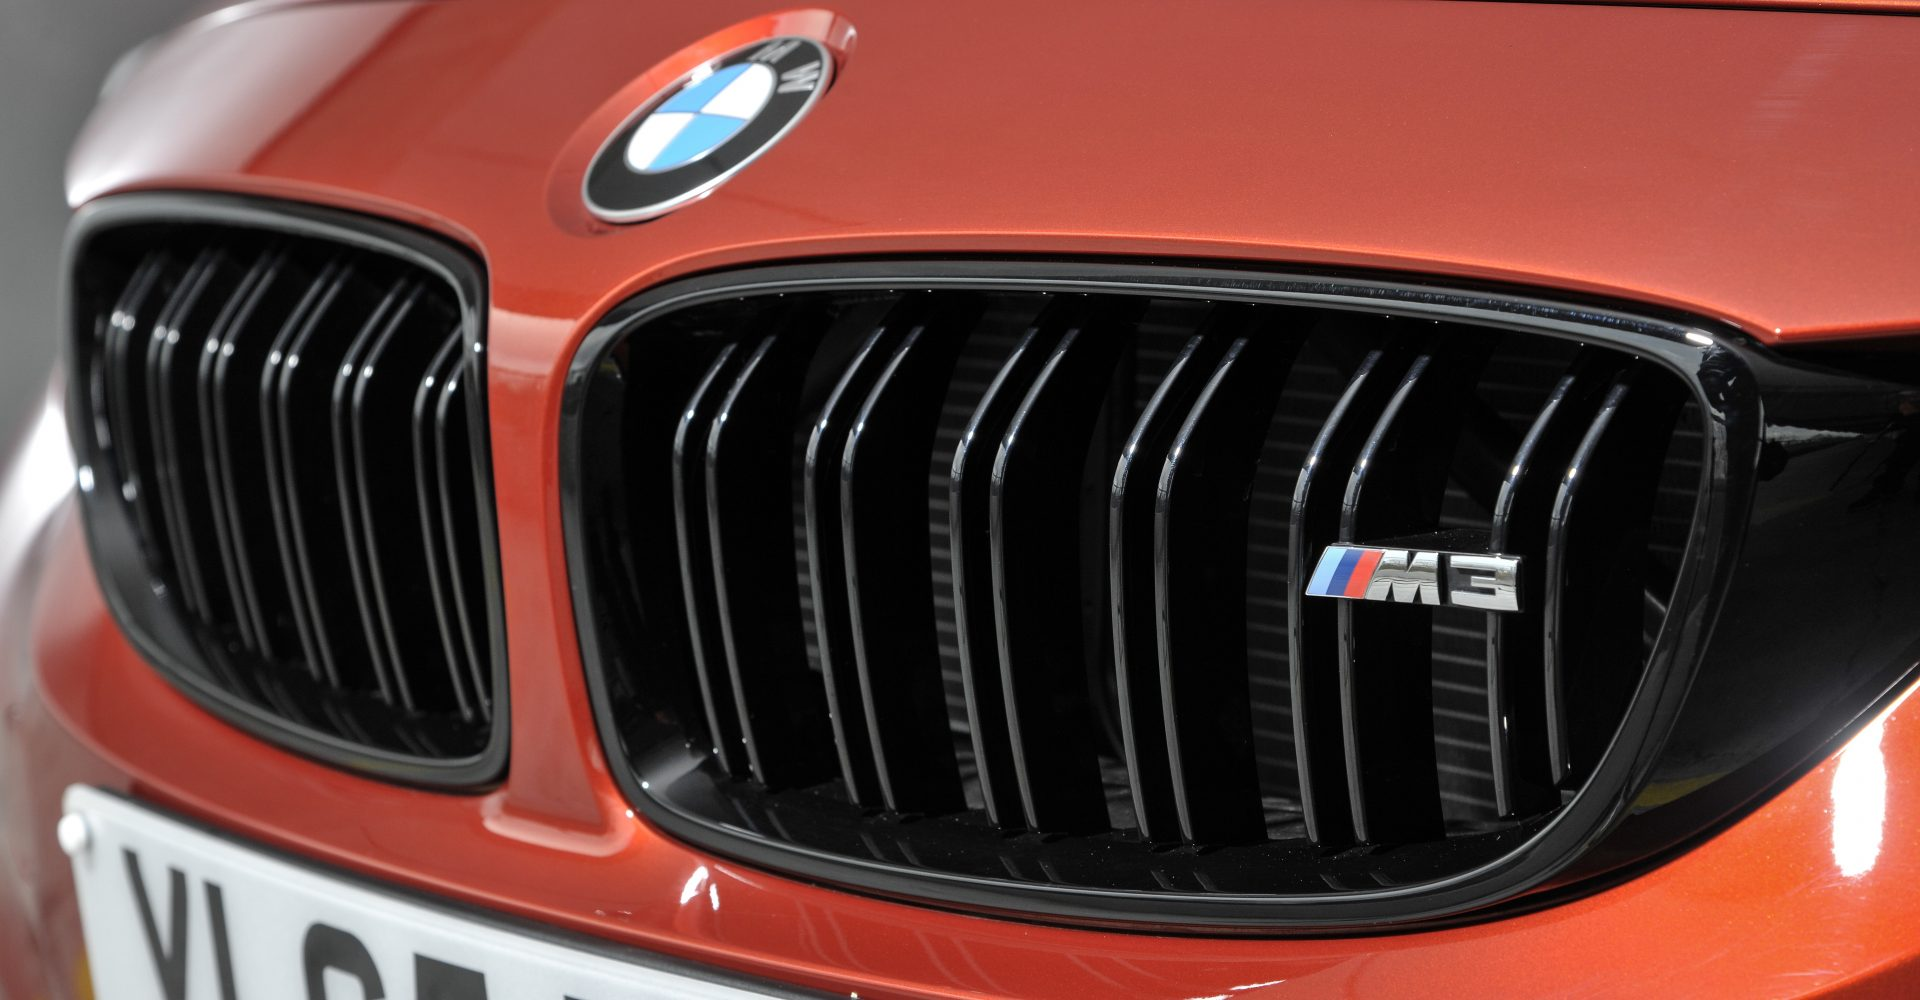 BMW confirms new M3 Touring